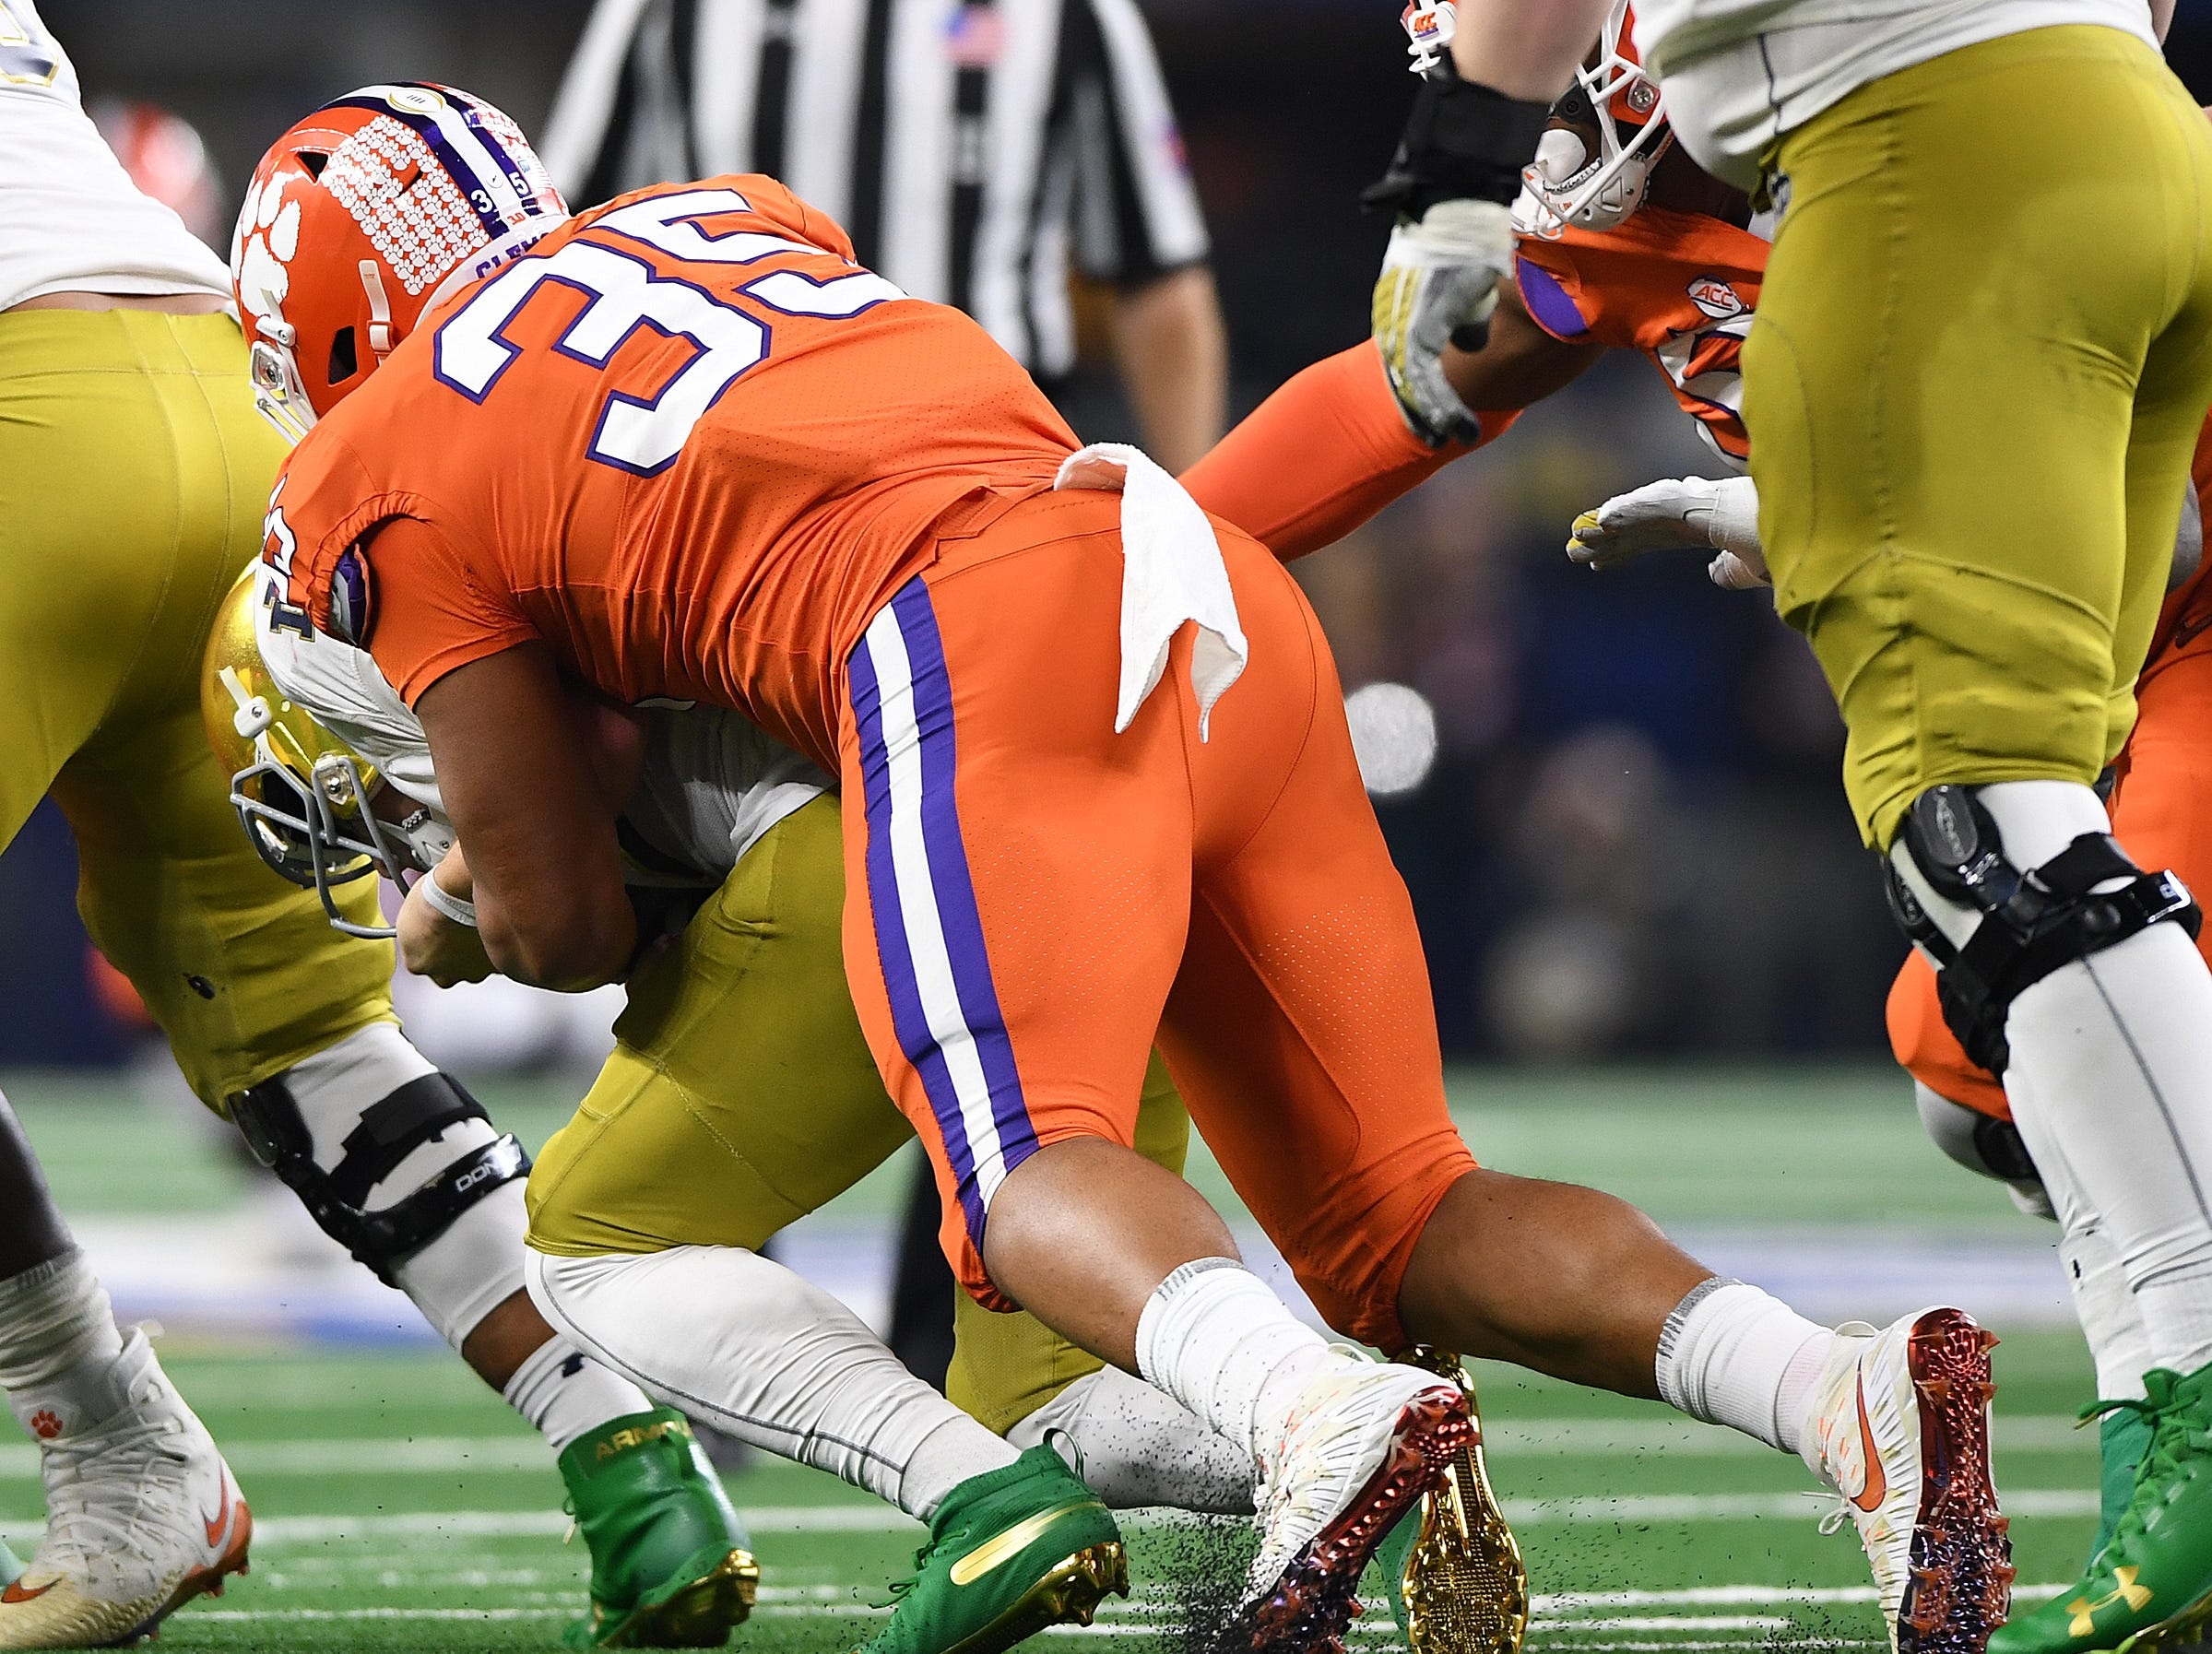 Clemson linebacker Justin Foster (35) during the 4th quarter of the Goodyear Cotton Bowl at AT&T stadium in Arlington, TX Saturday, December 29, 2018.